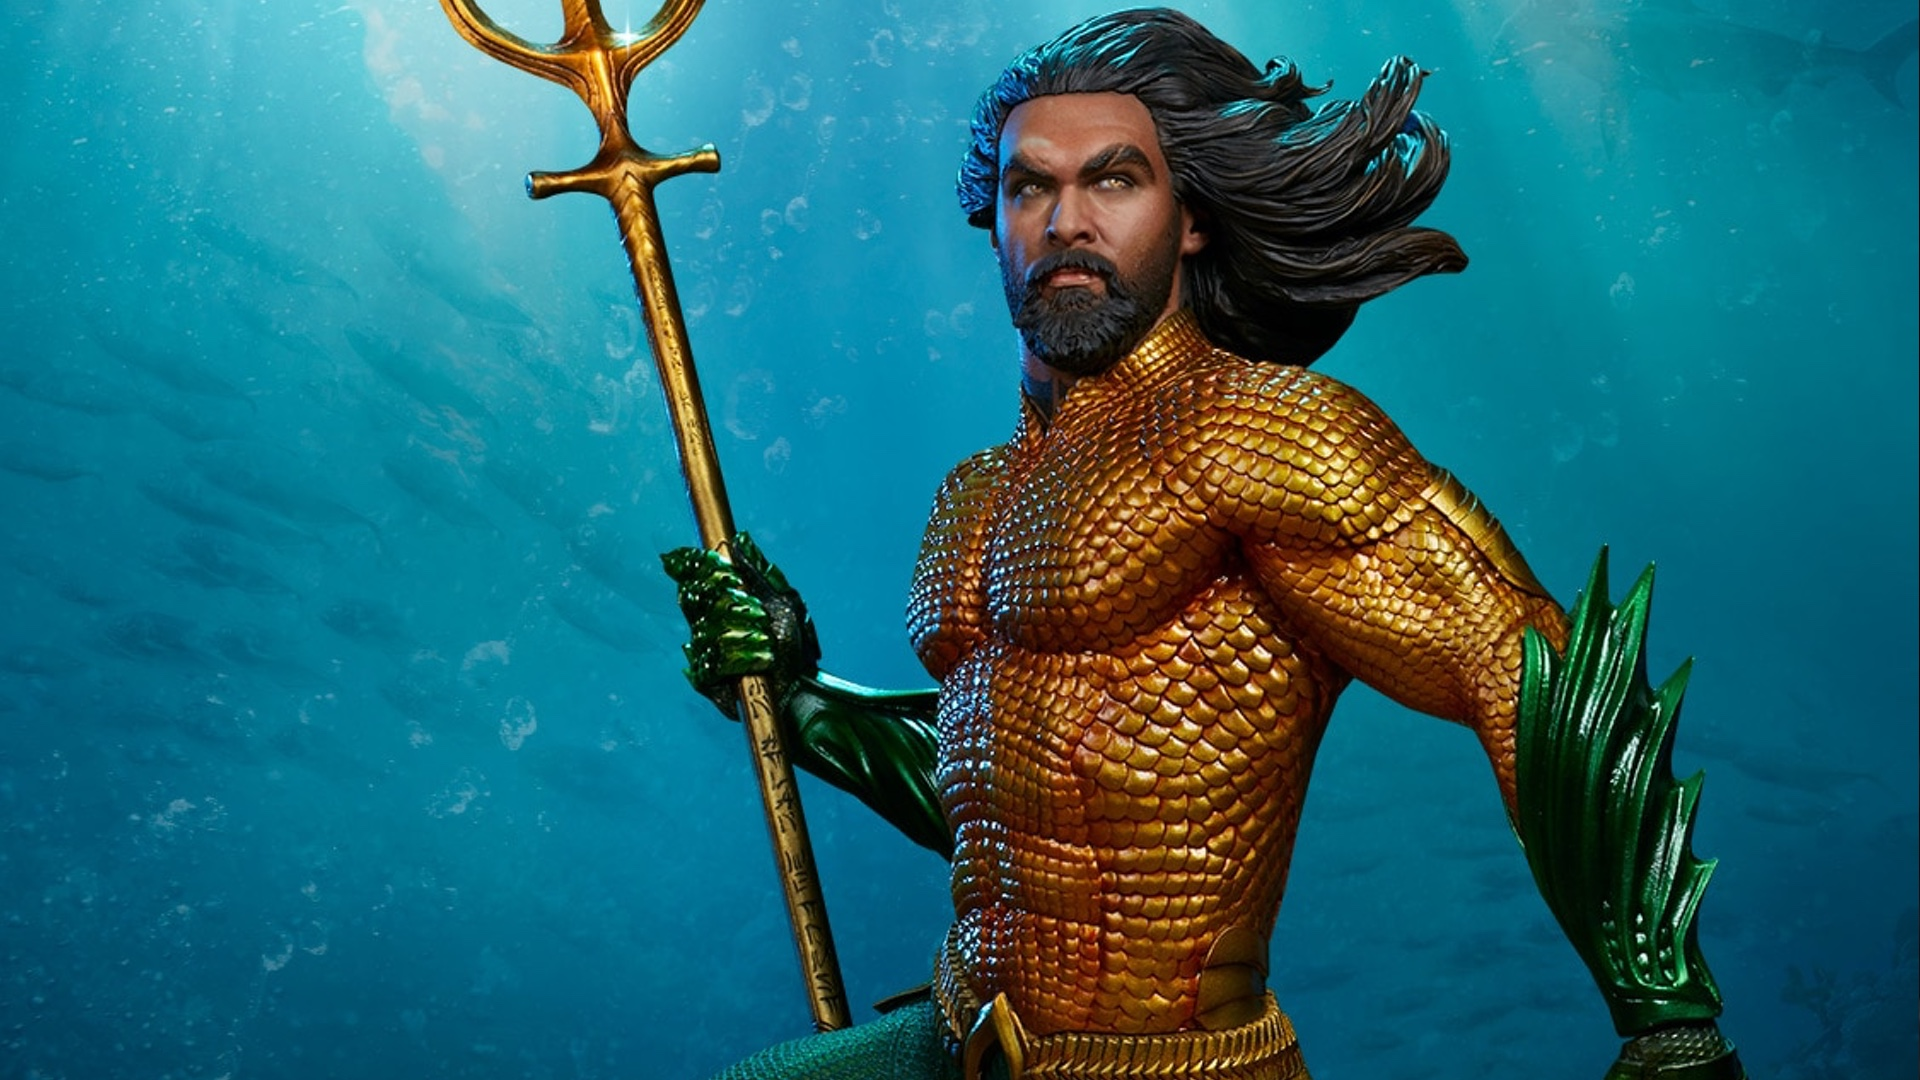 Sideshow Collectibles Has Unveiled Their Premium Format Figure Based On Jason Momoas Version Of Aquaman In Director James Wans Upcoming Film